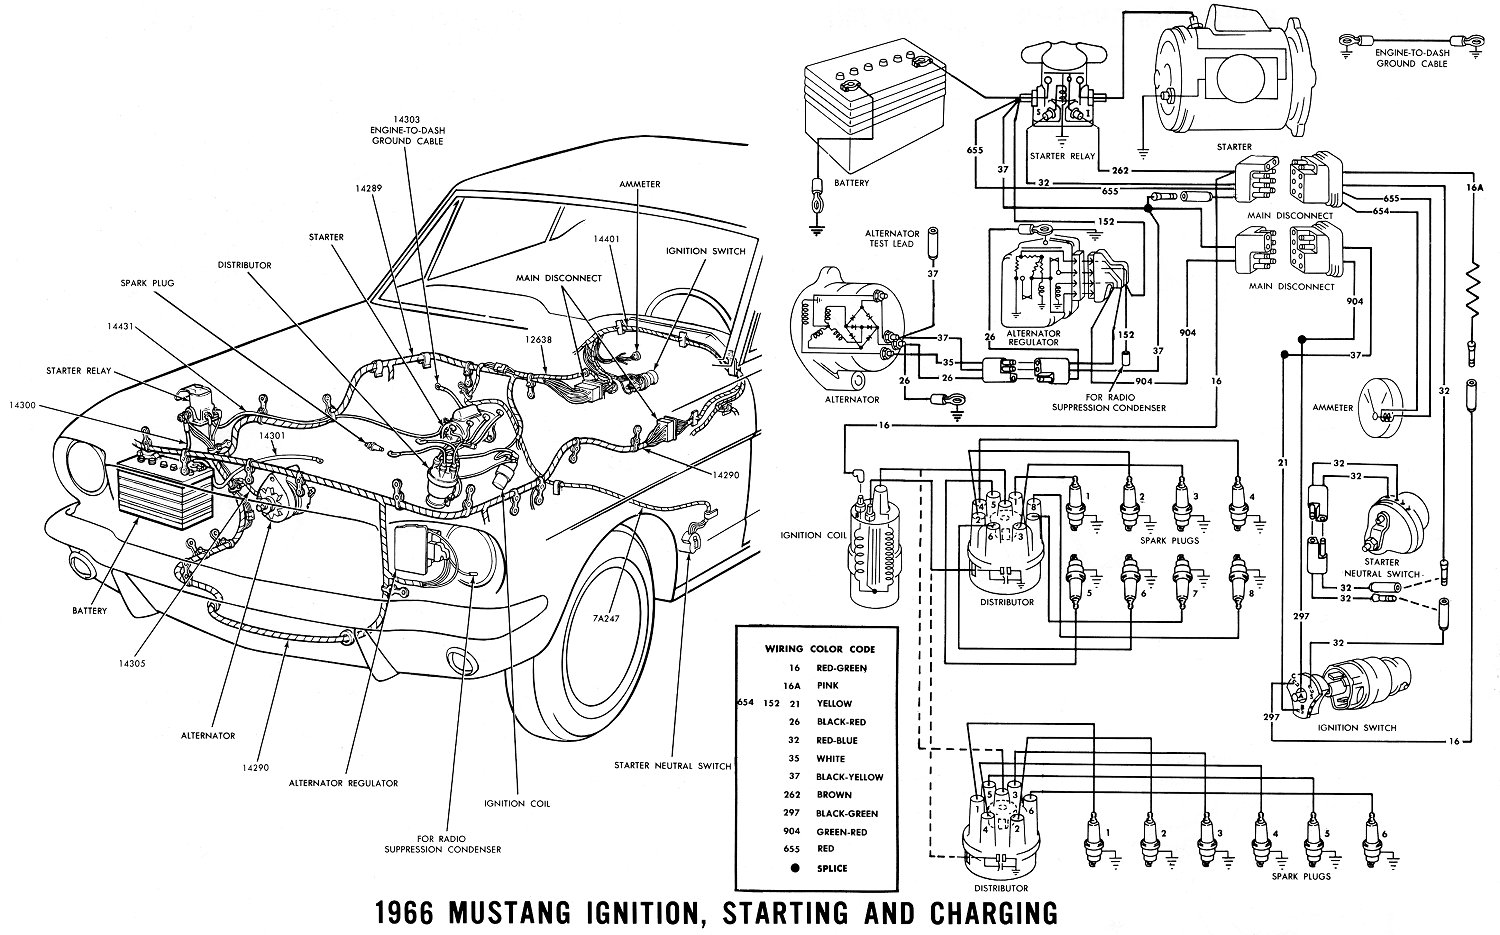 hight resolution of 1966 mustang wiring diagrams average joe restoration 1966 mustang horn fuse 1966 mustang fuse diagram